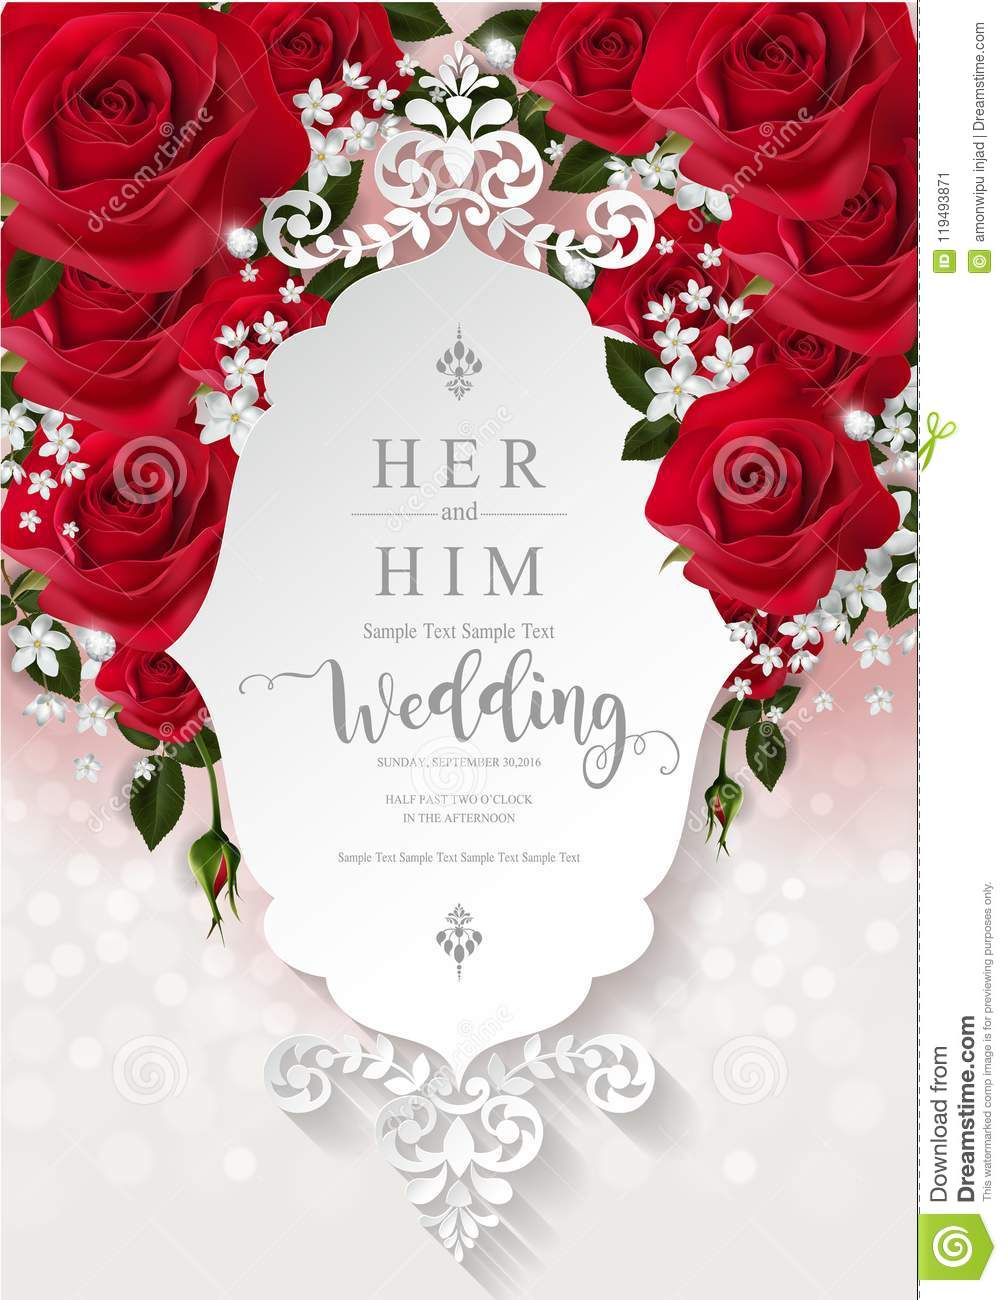 Magnificent Wedding Invitation Wording Gifts Gallery - Invitations ...